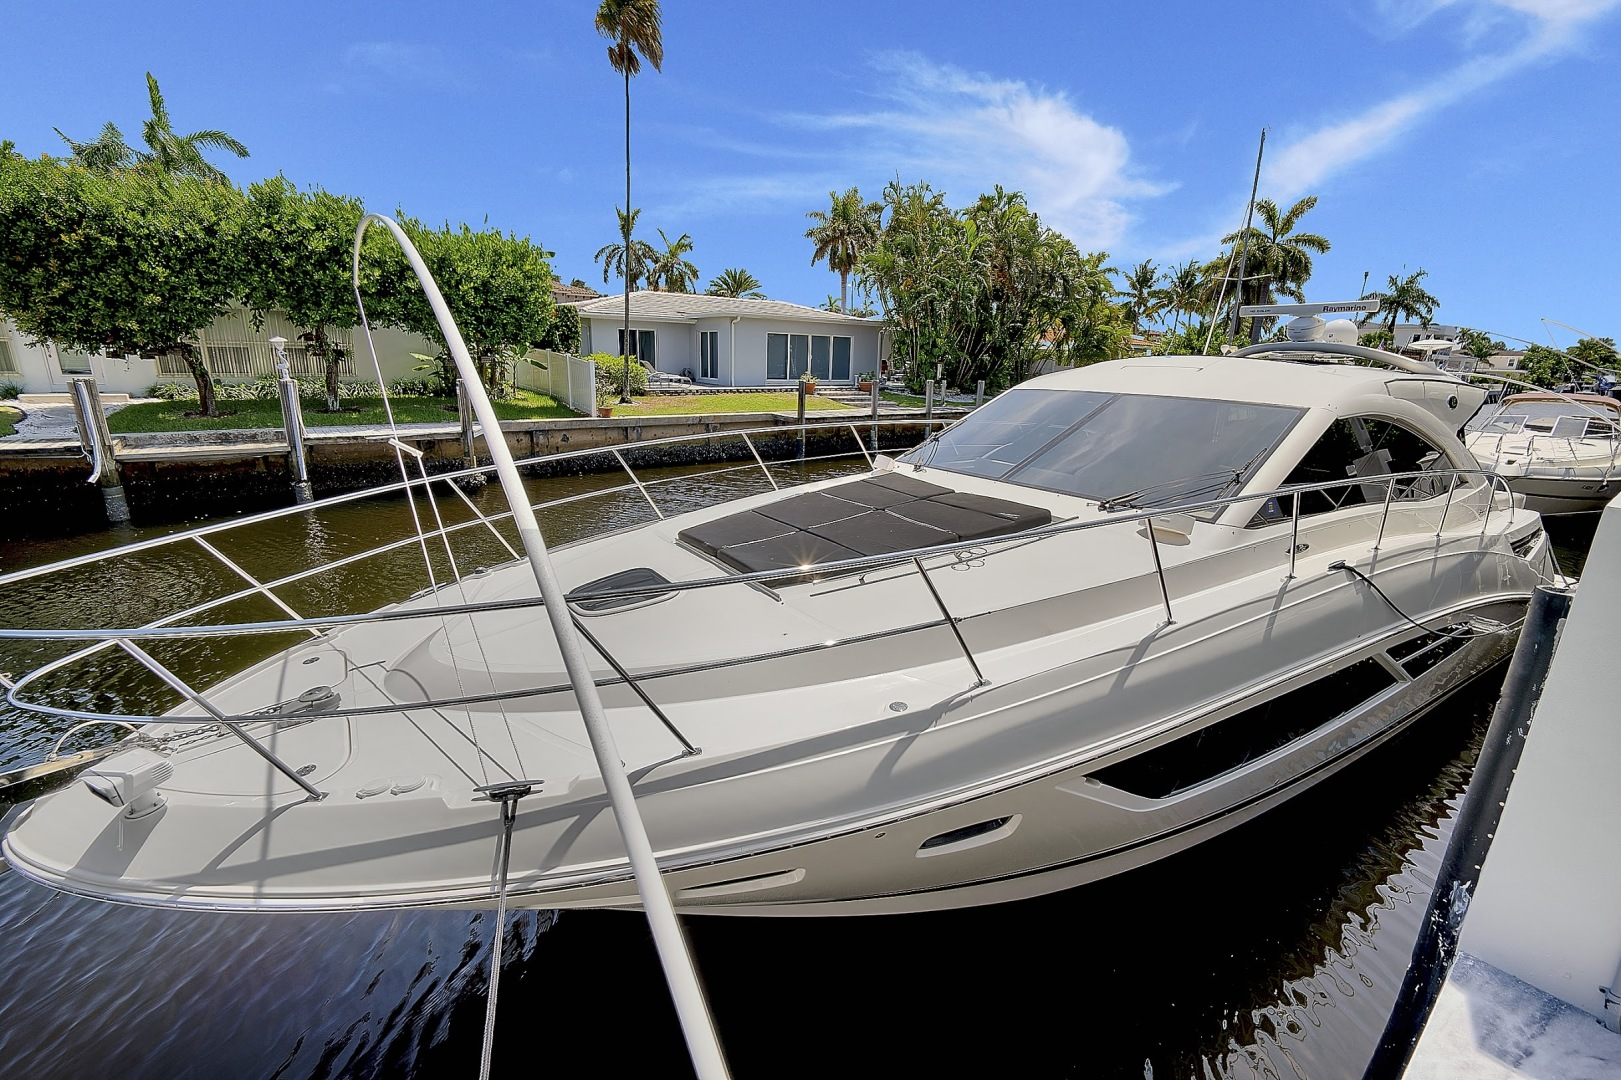 Sea Ray-Sundancer 2014-Lunasea Boca Raton-Florida-United States-1503183 | Thumbnail